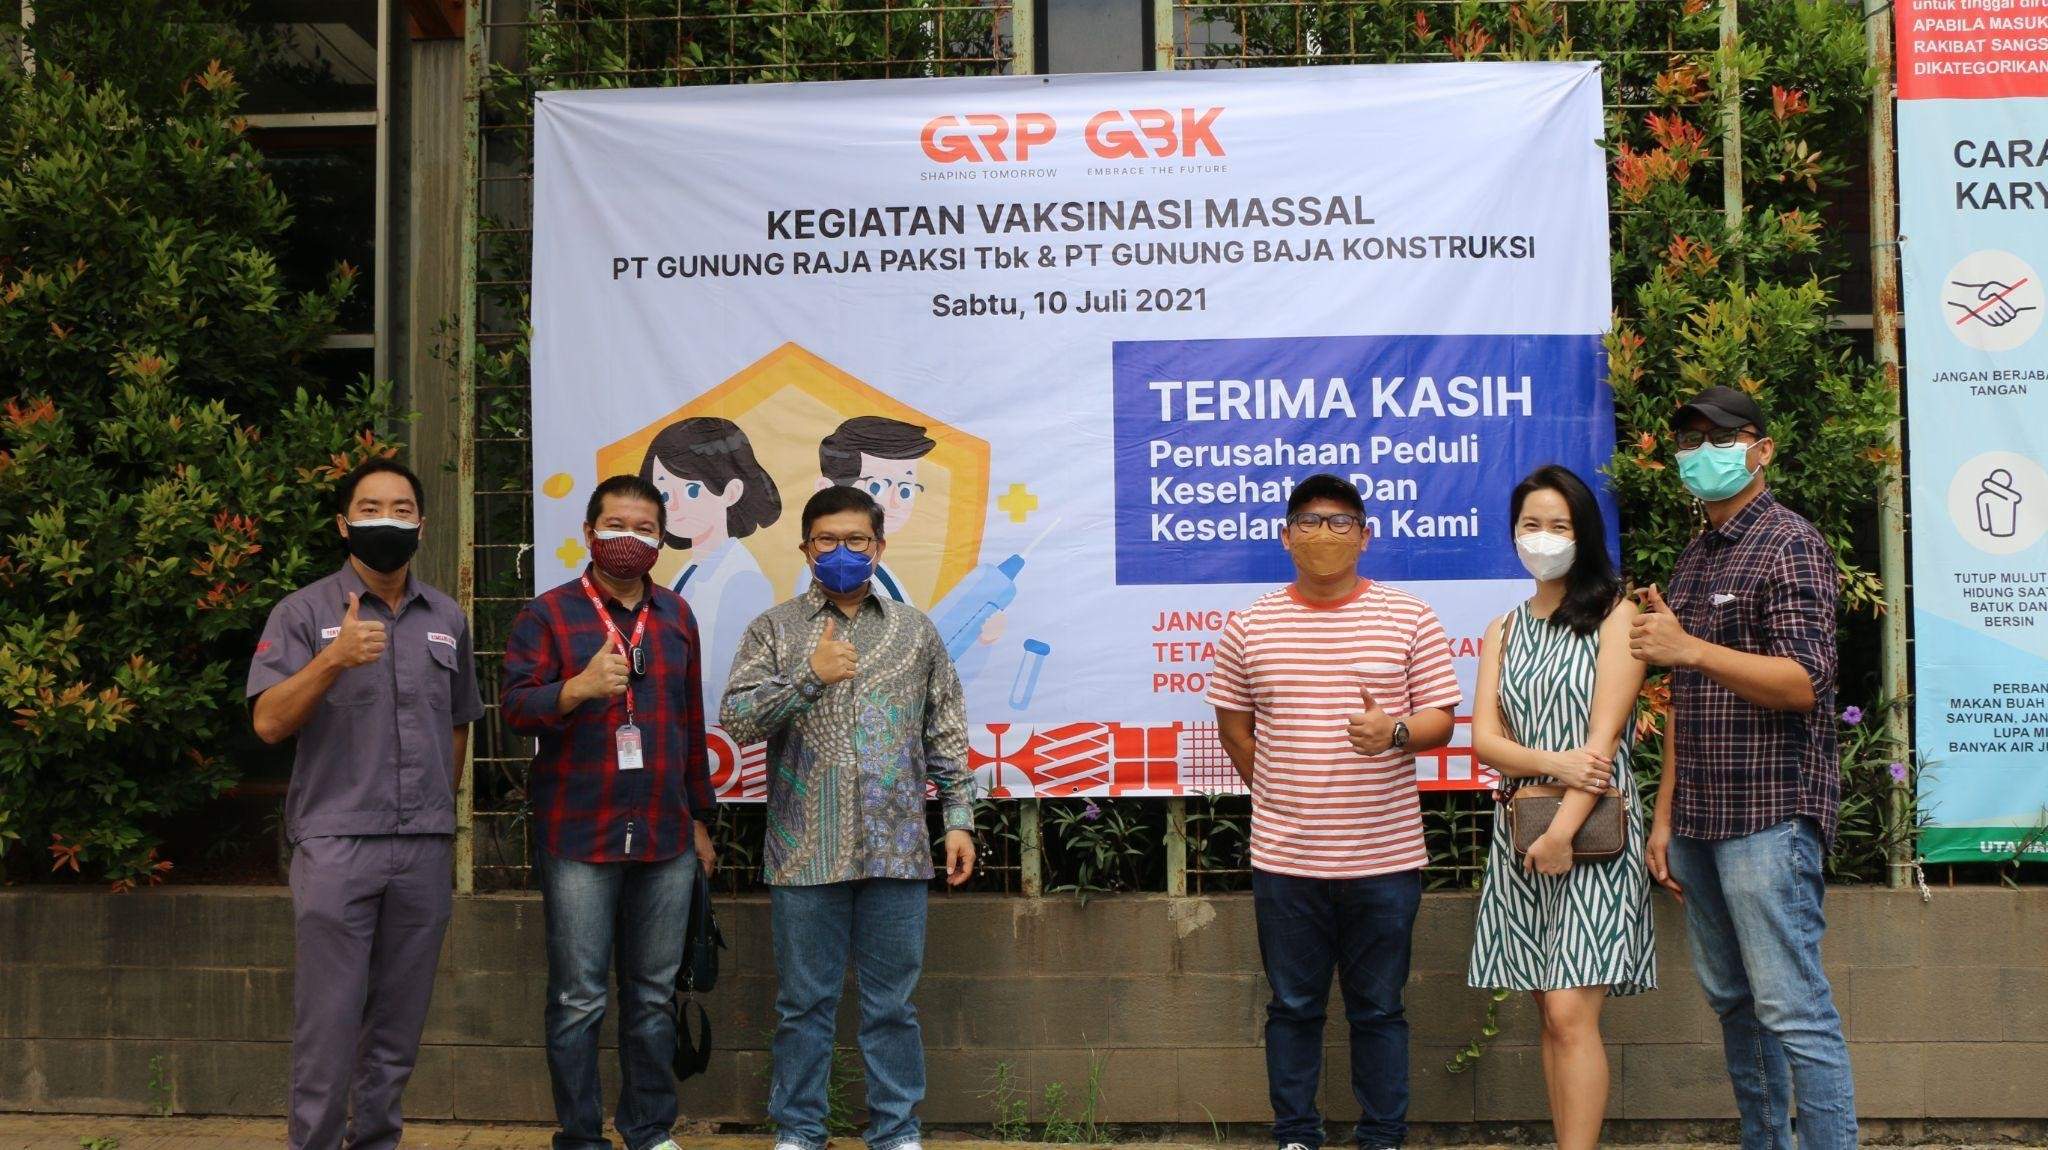 GRP vaccination programme